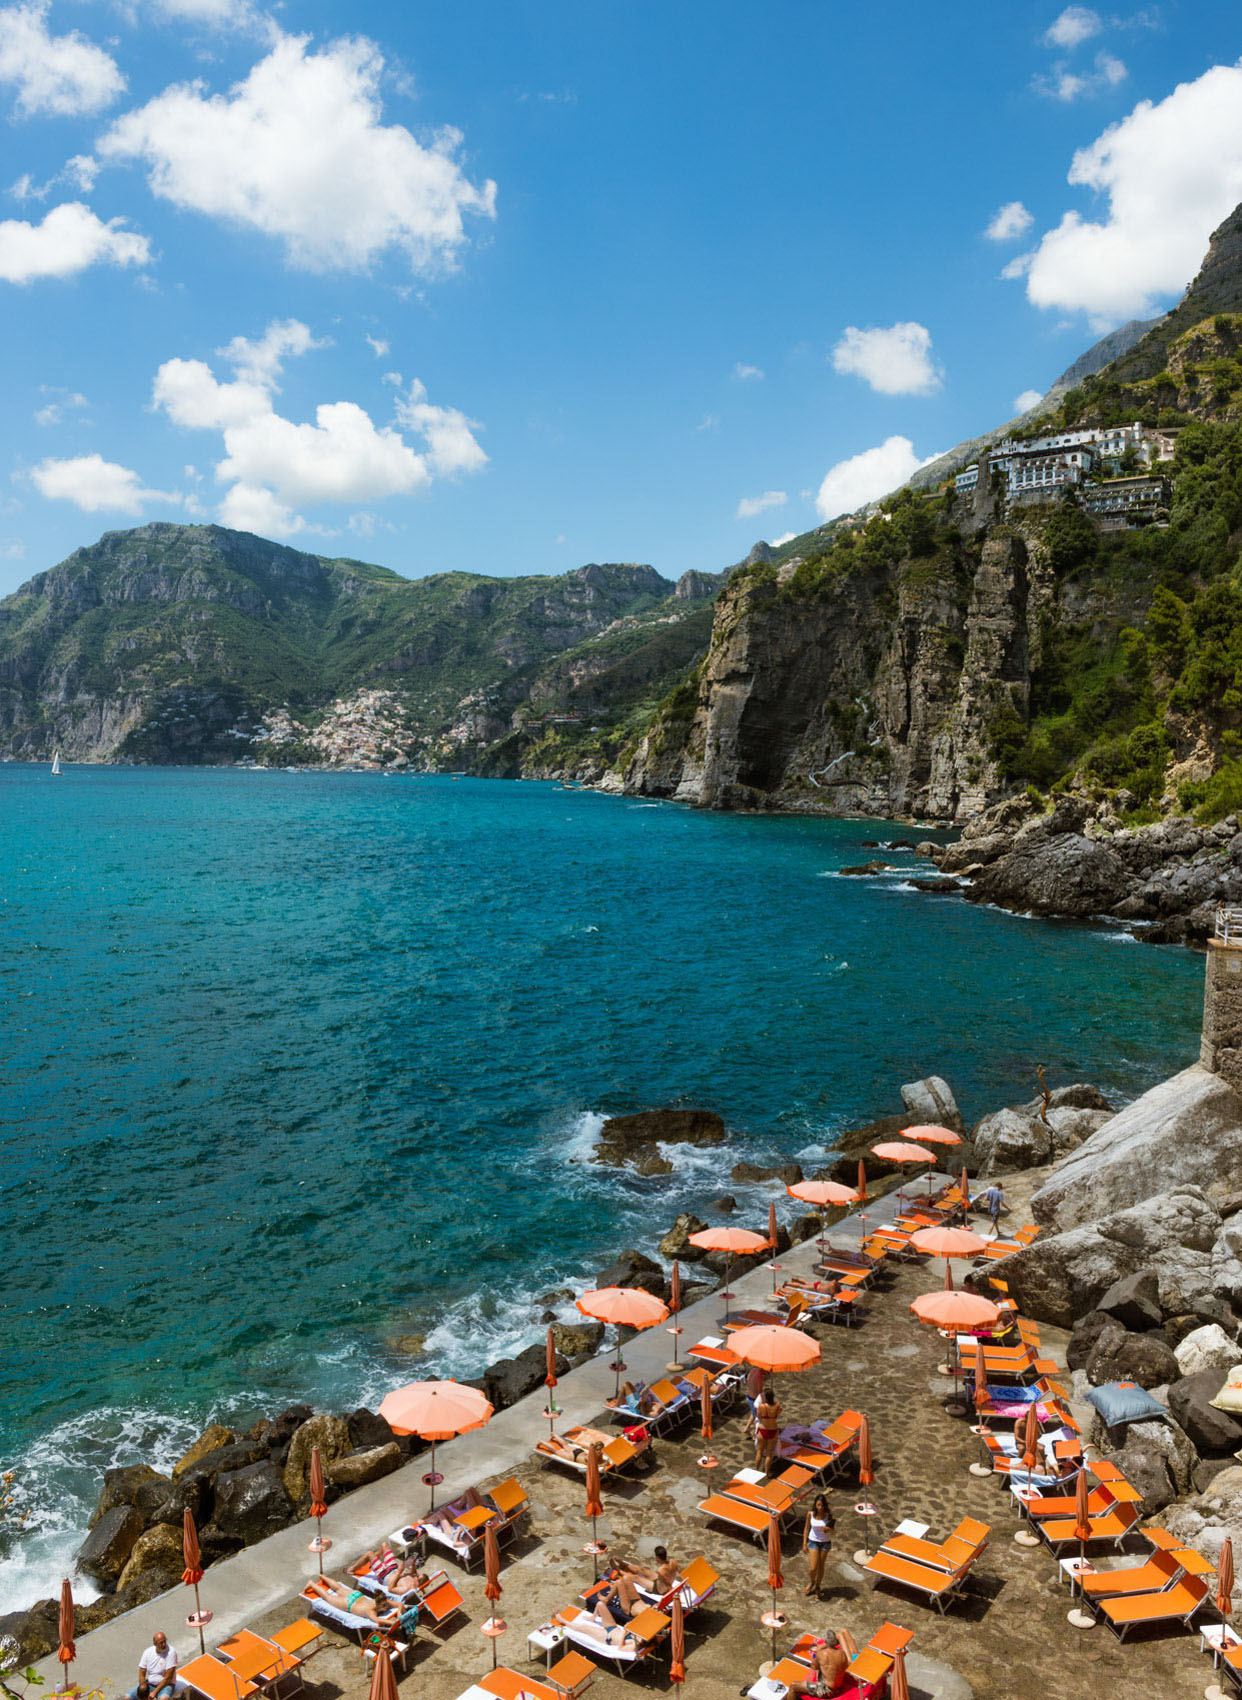 O18-620 beach club, Praiano, Amalfi Coast